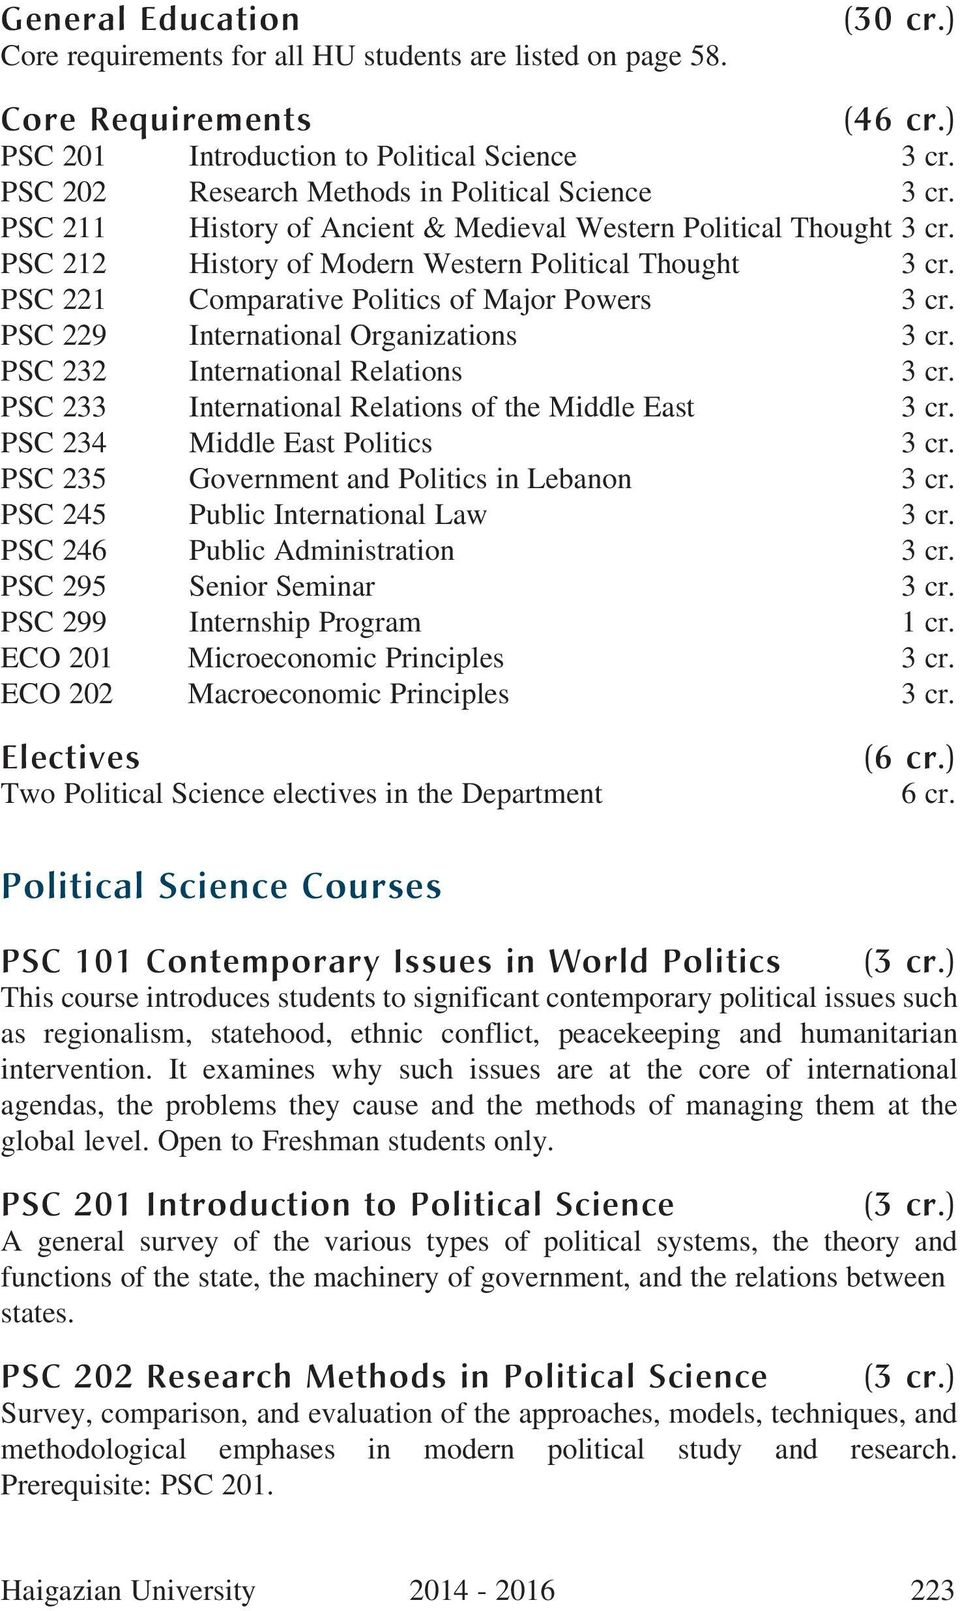 PSC 221 Comparative Politics of Major Powers 3 cr. PSC 229 International Organizations 3 cr. PSC 232 International Relations 3 cr. PSC 233 International Relations of the Middle East 3 cr.